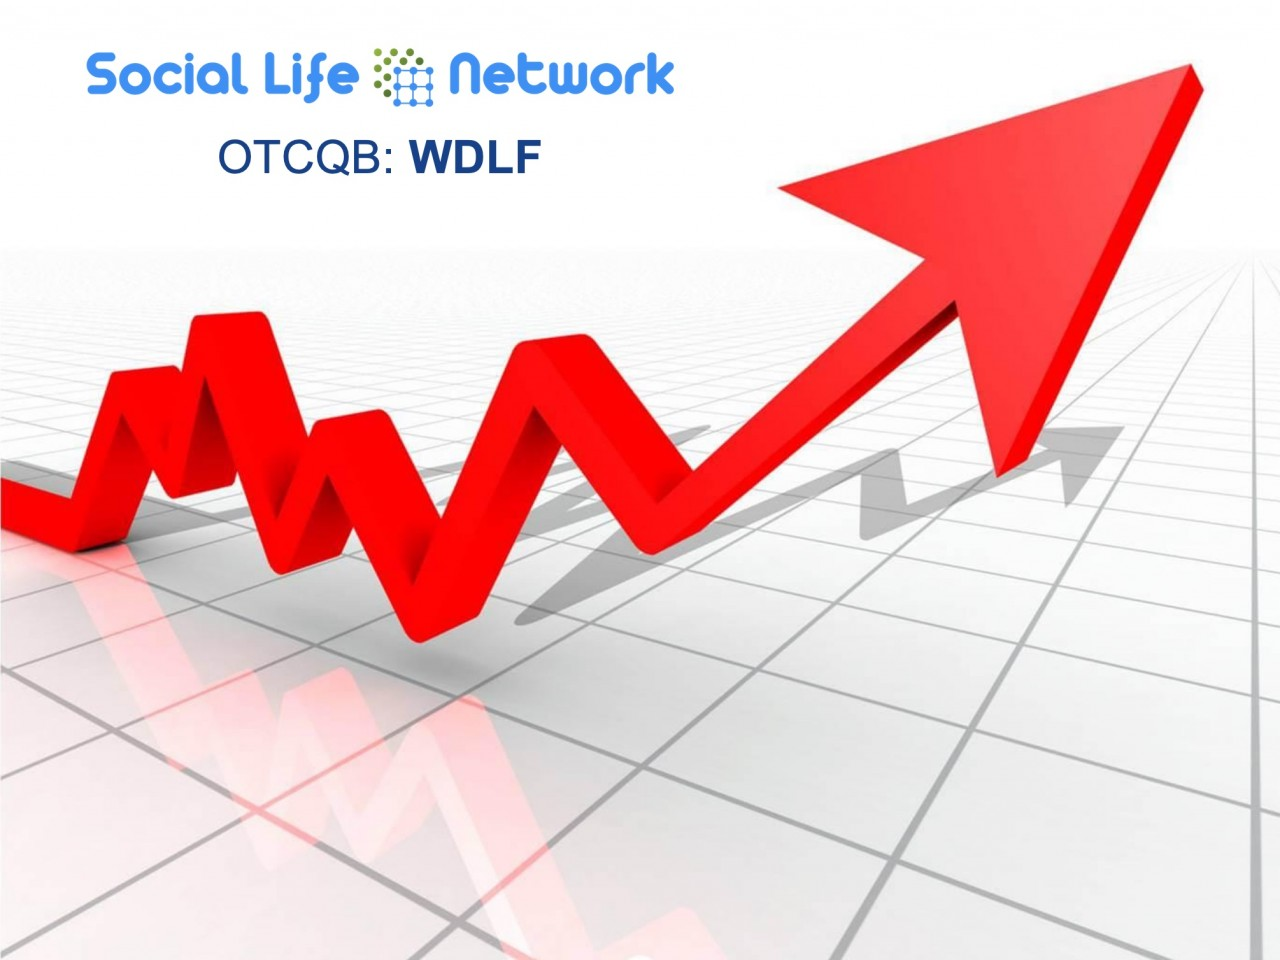 Social Life Network and MjLink Shareholder Update Call, Transcript and MP3